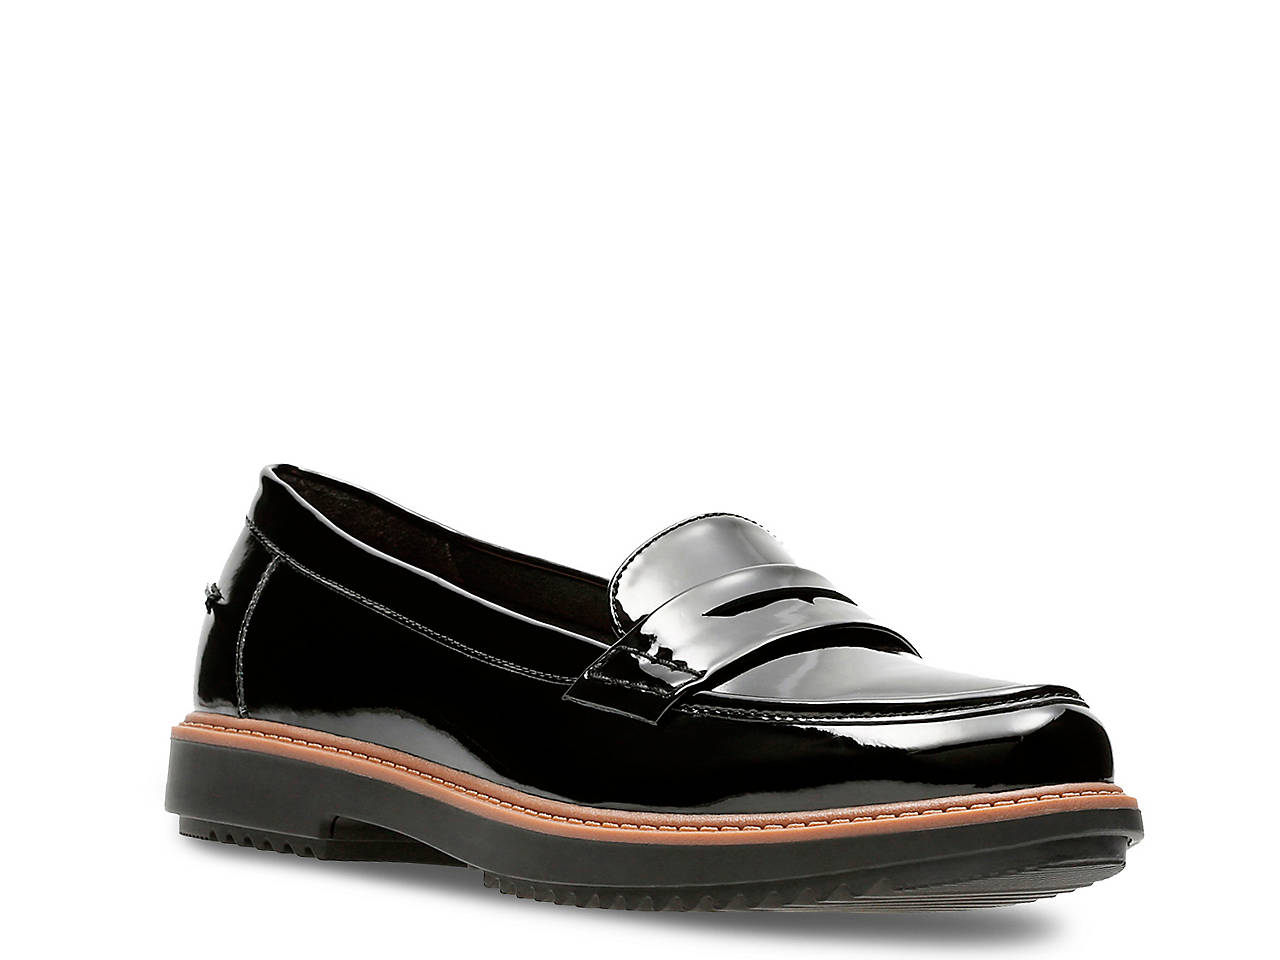 08bfdeb5c38 Clarks Raise Eletta Loafer Women s Shoes